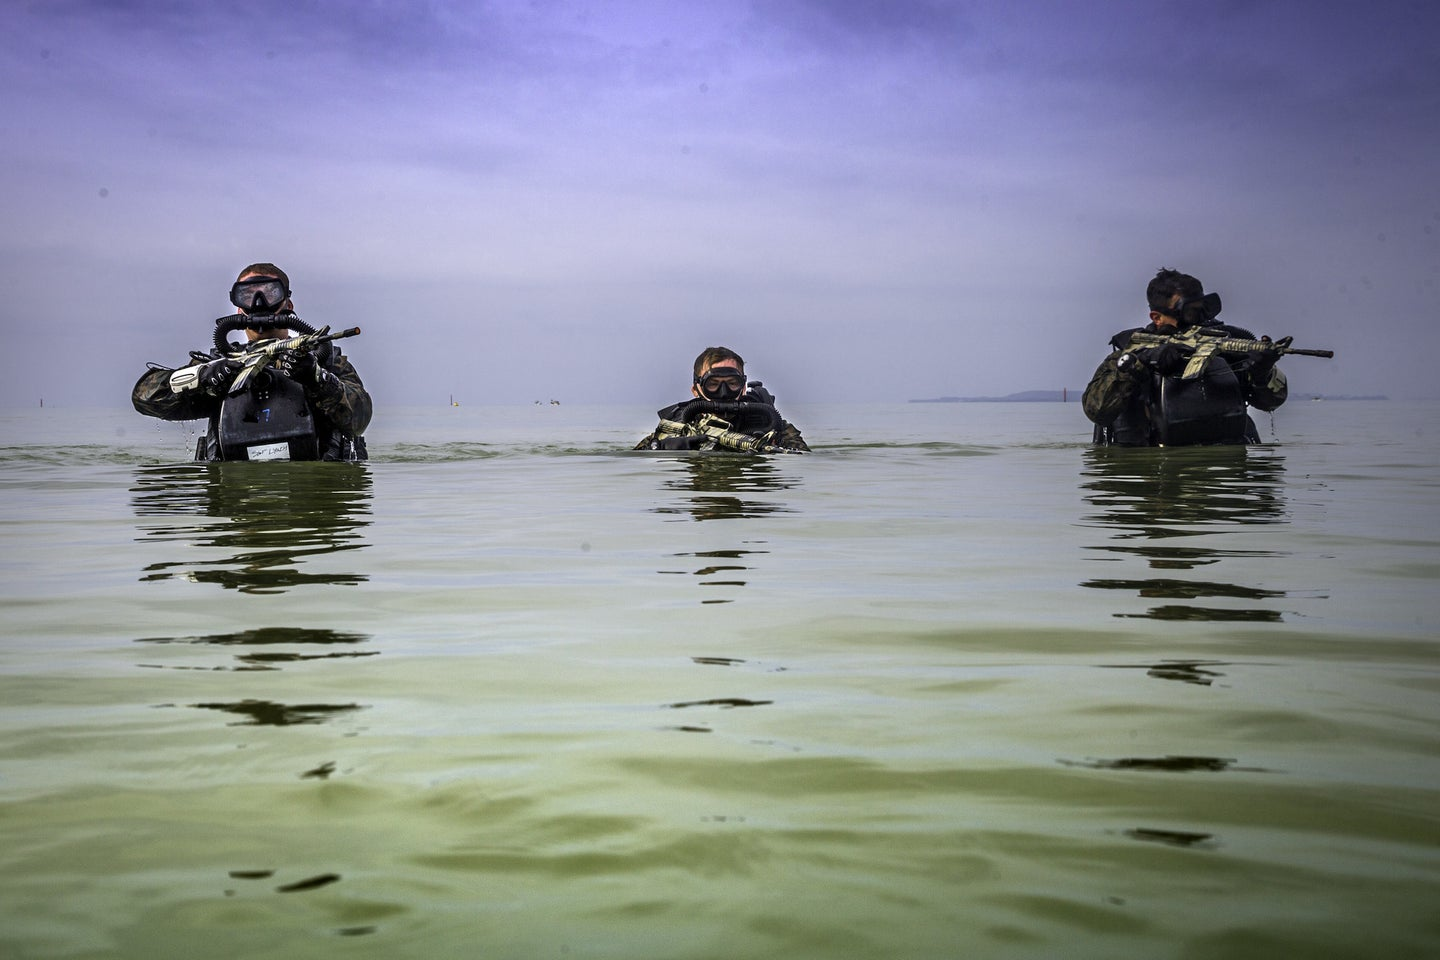 This new Russian rifle is designed for combat beneath the waves